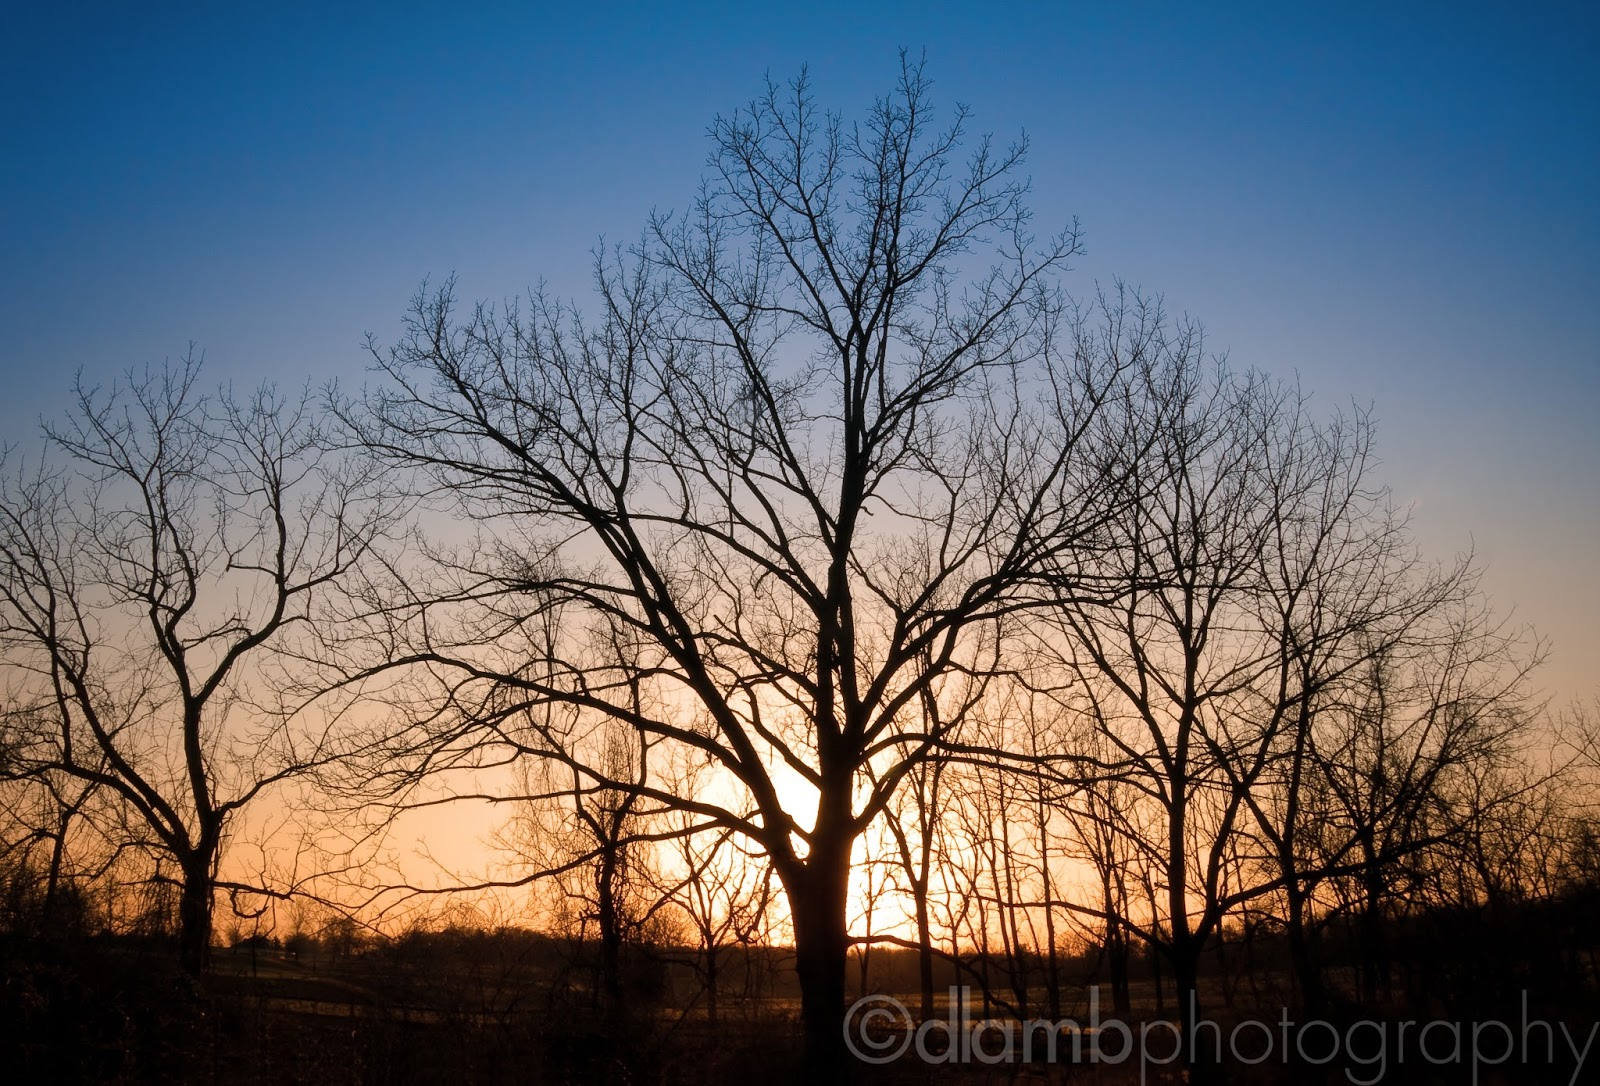 http://david-lamb.artistwebsites.com/featured/winter-trees-at-dusk-david-lamb.html